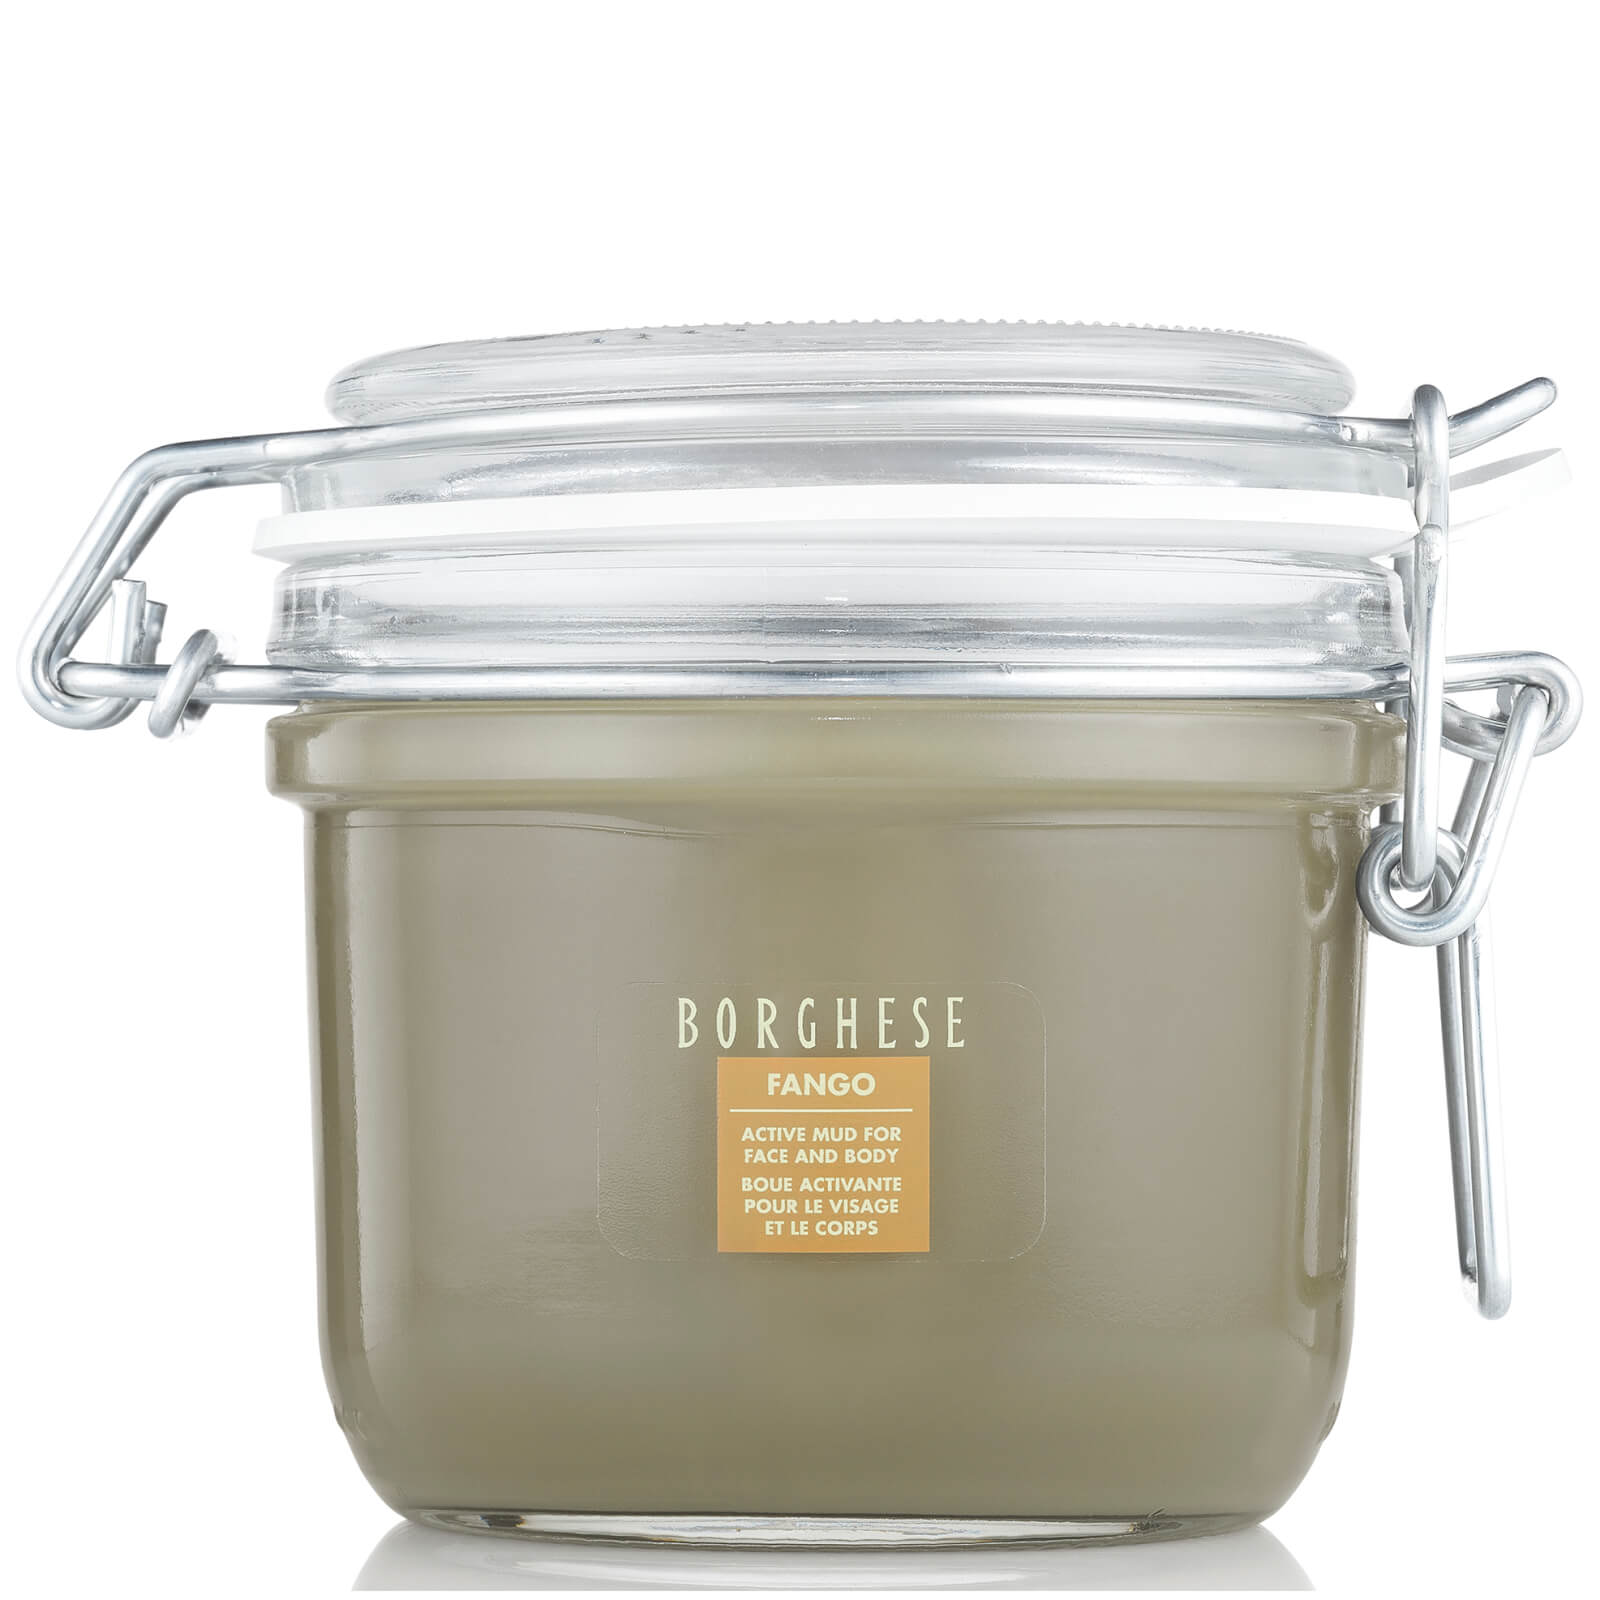 Borghese Fango Active Mud for Face and Body (222ml)